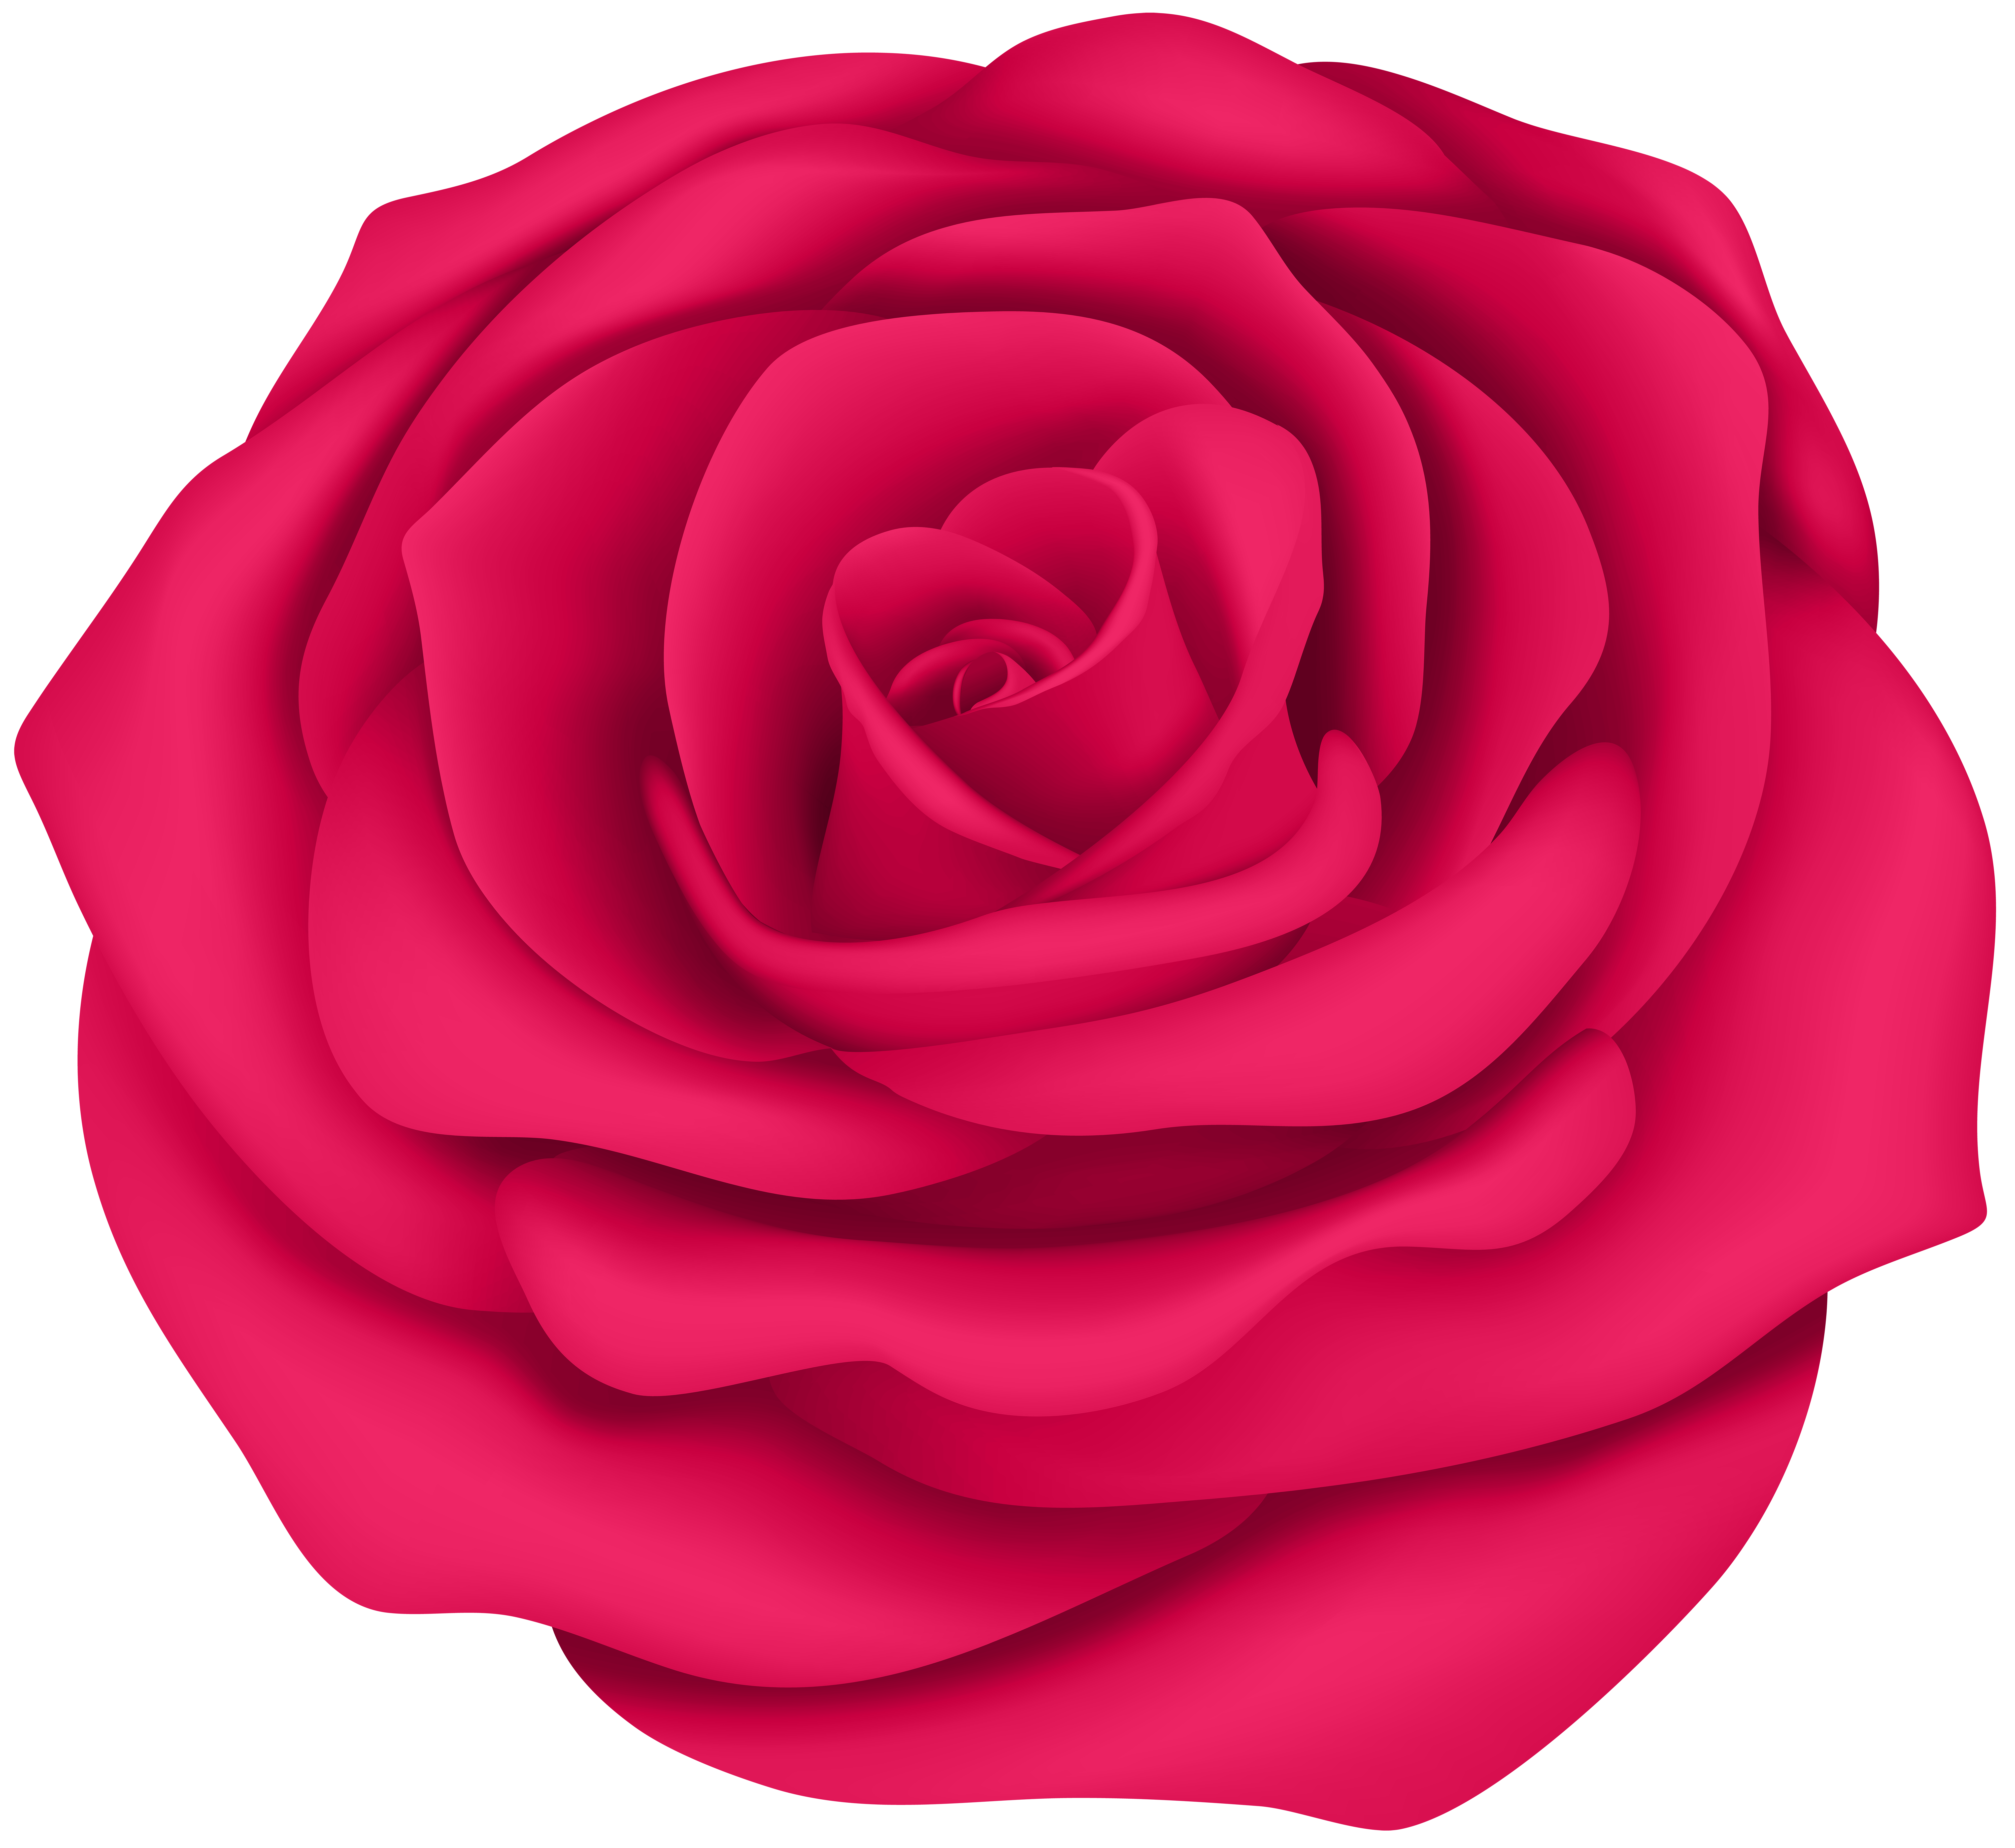 Clipart rose blossom. Flower at getdrawings com